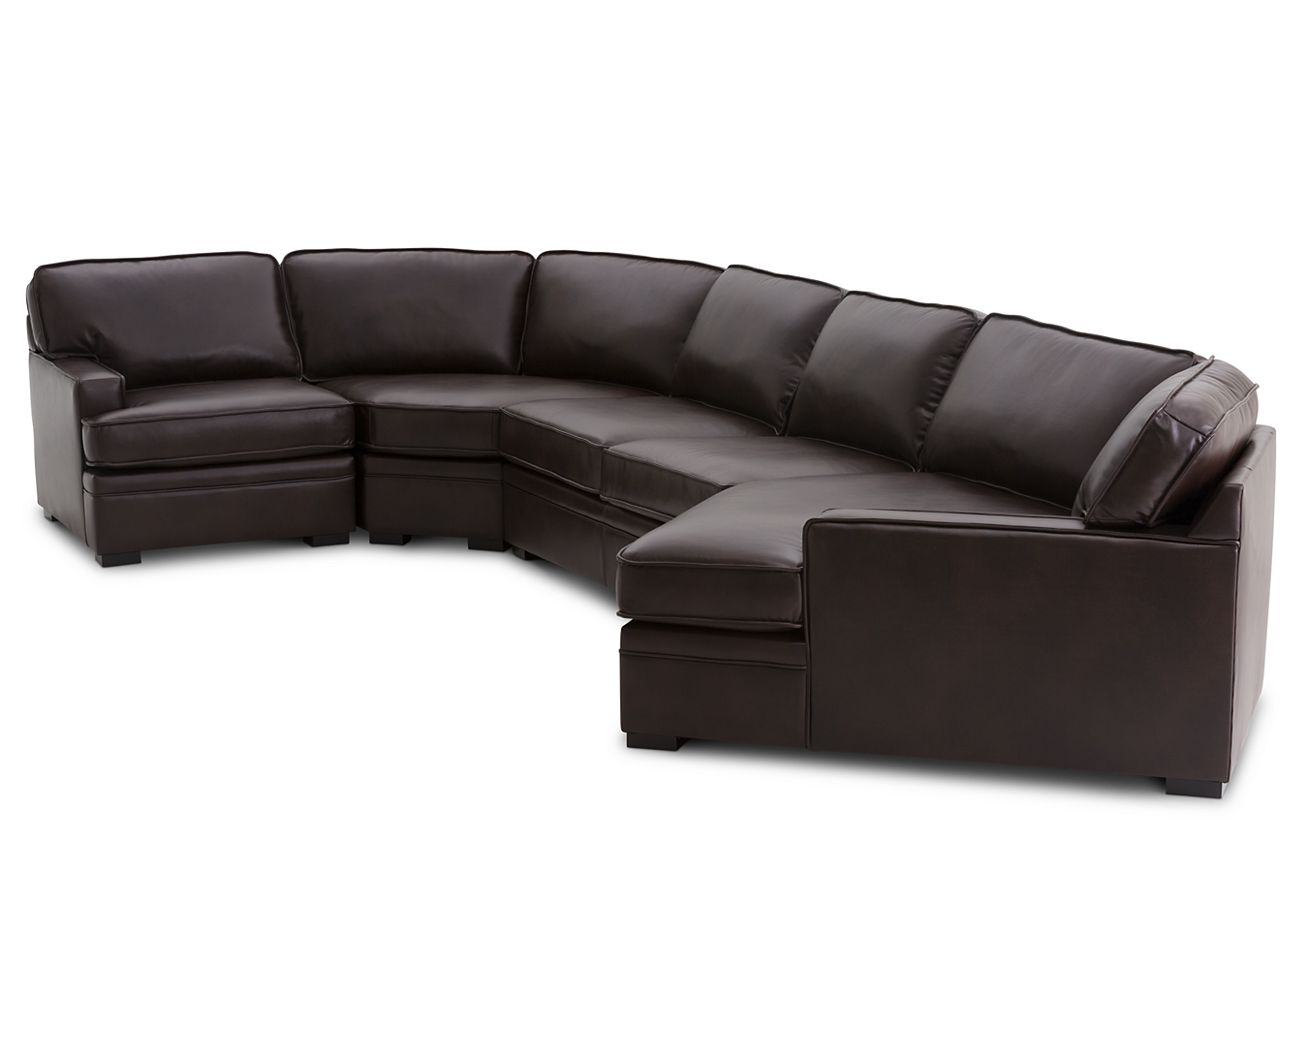 Hot Springs 4 Pc Sectional